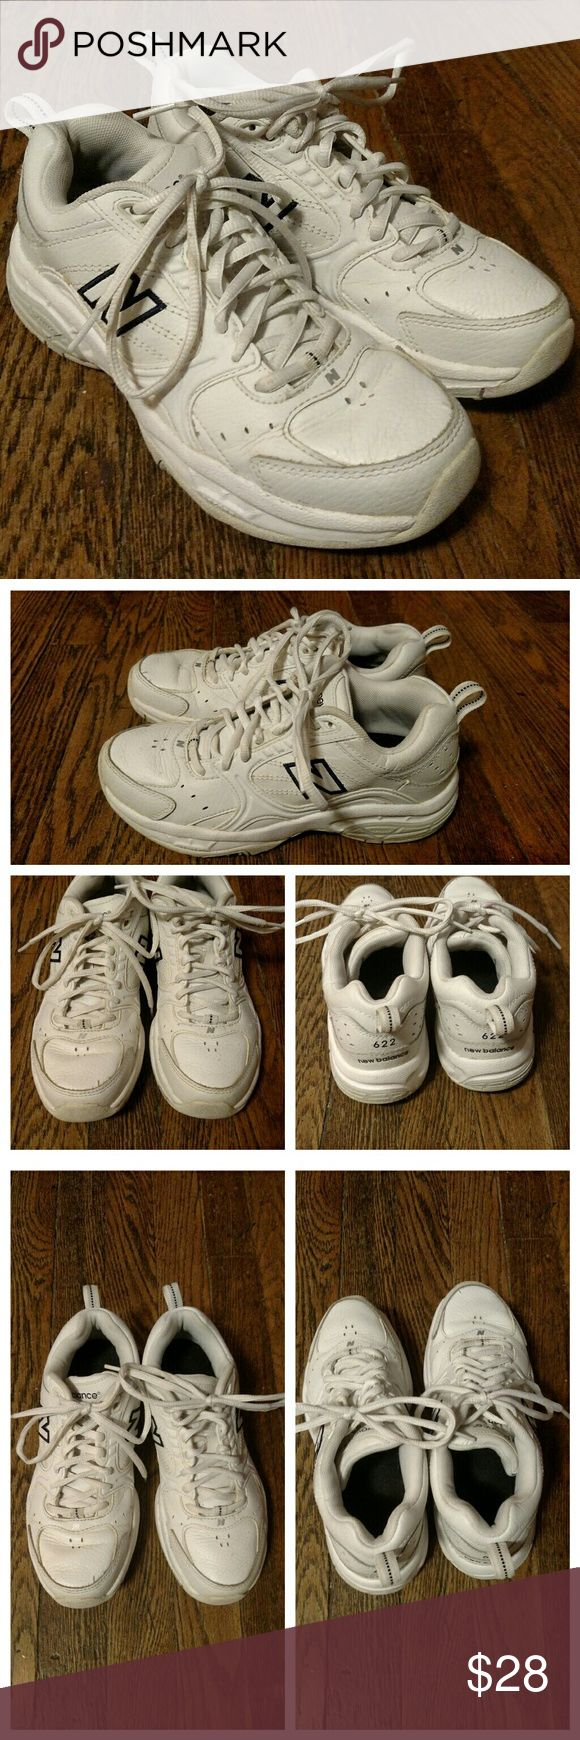 New Balance White Leather Walking Shoes Size 6 They have some normal wear but overall they are in good condition.  No holes, rips, or major problems. New Balance Shoes Athletic Shoes